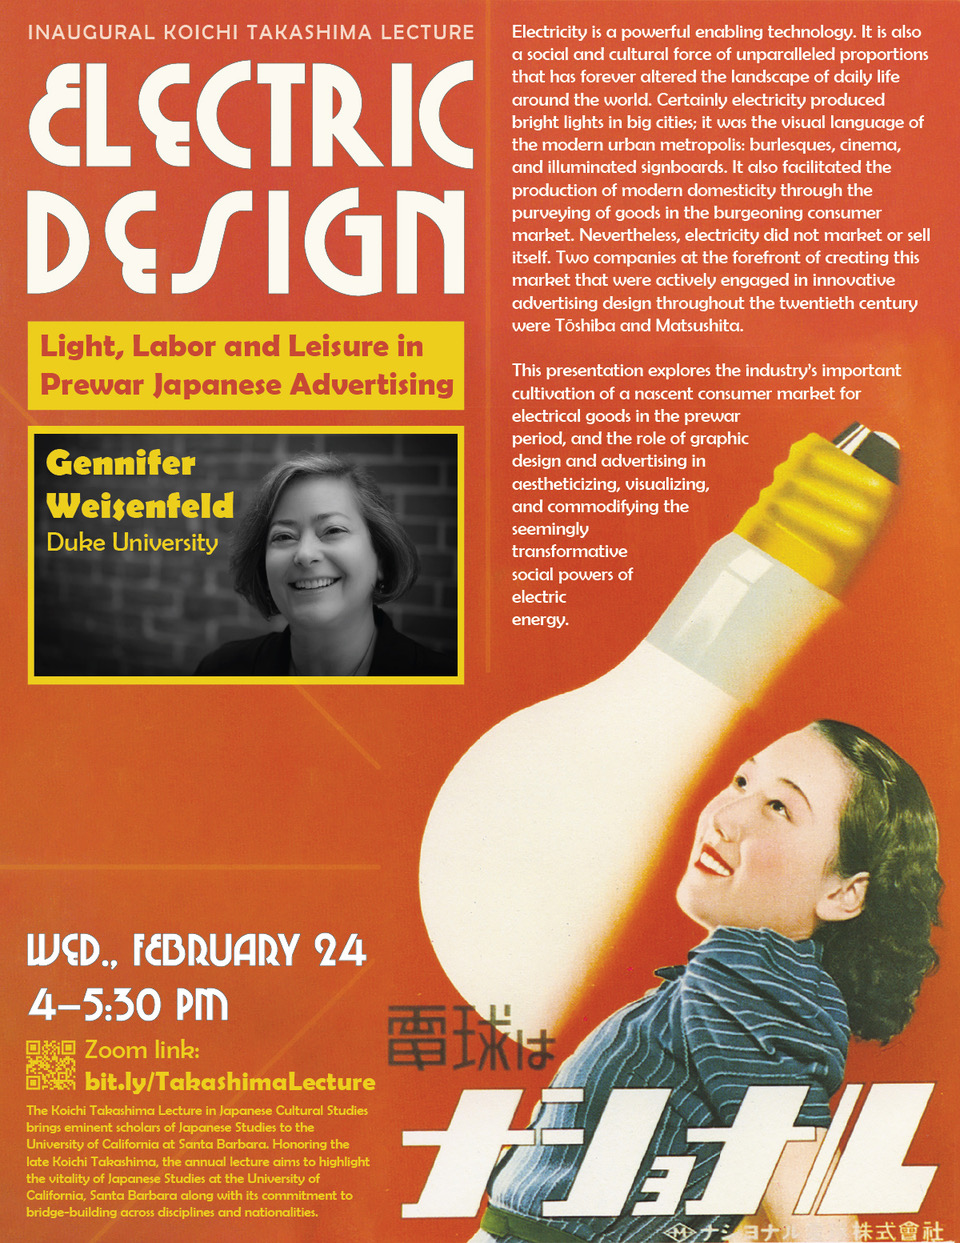 """Flyer for """"Electric Design: Light, Labor, and Leisure in Prewar Japanese Advertising"""" featuring Gennifer Weisenfeld from Duke University on 2/24 at 4-5:30Pm"""